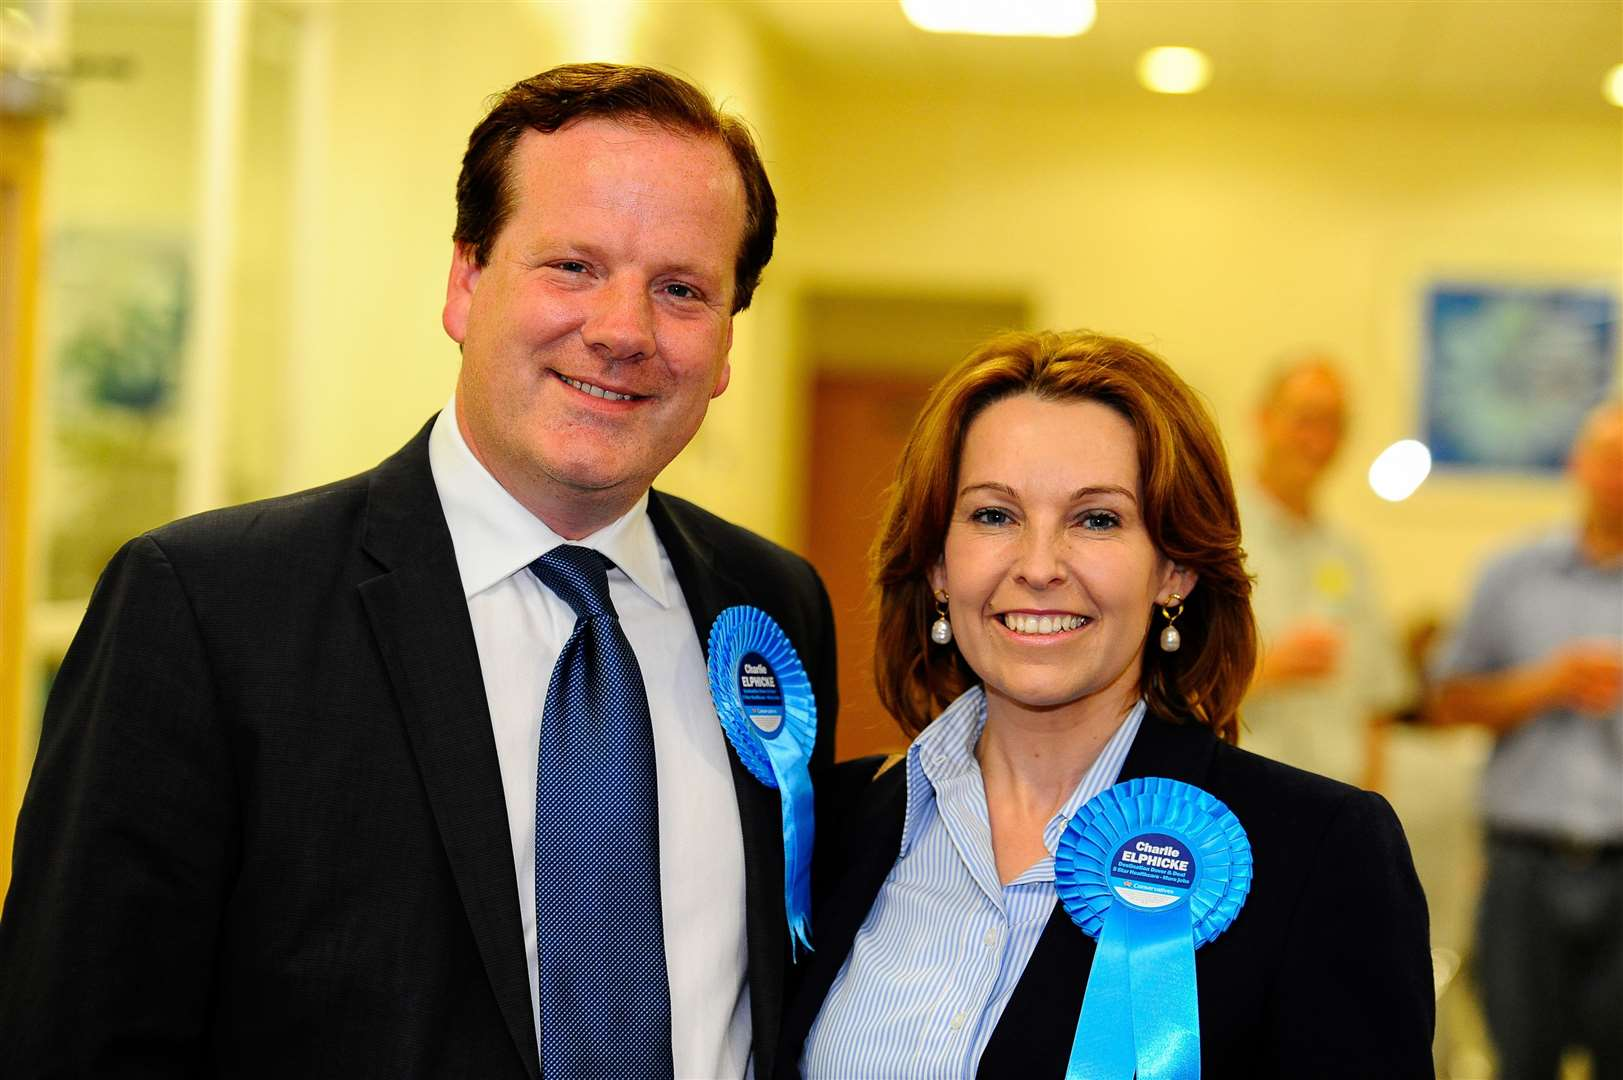 MP for Dover and Deal Natalie Elphicke and her husband Charlie